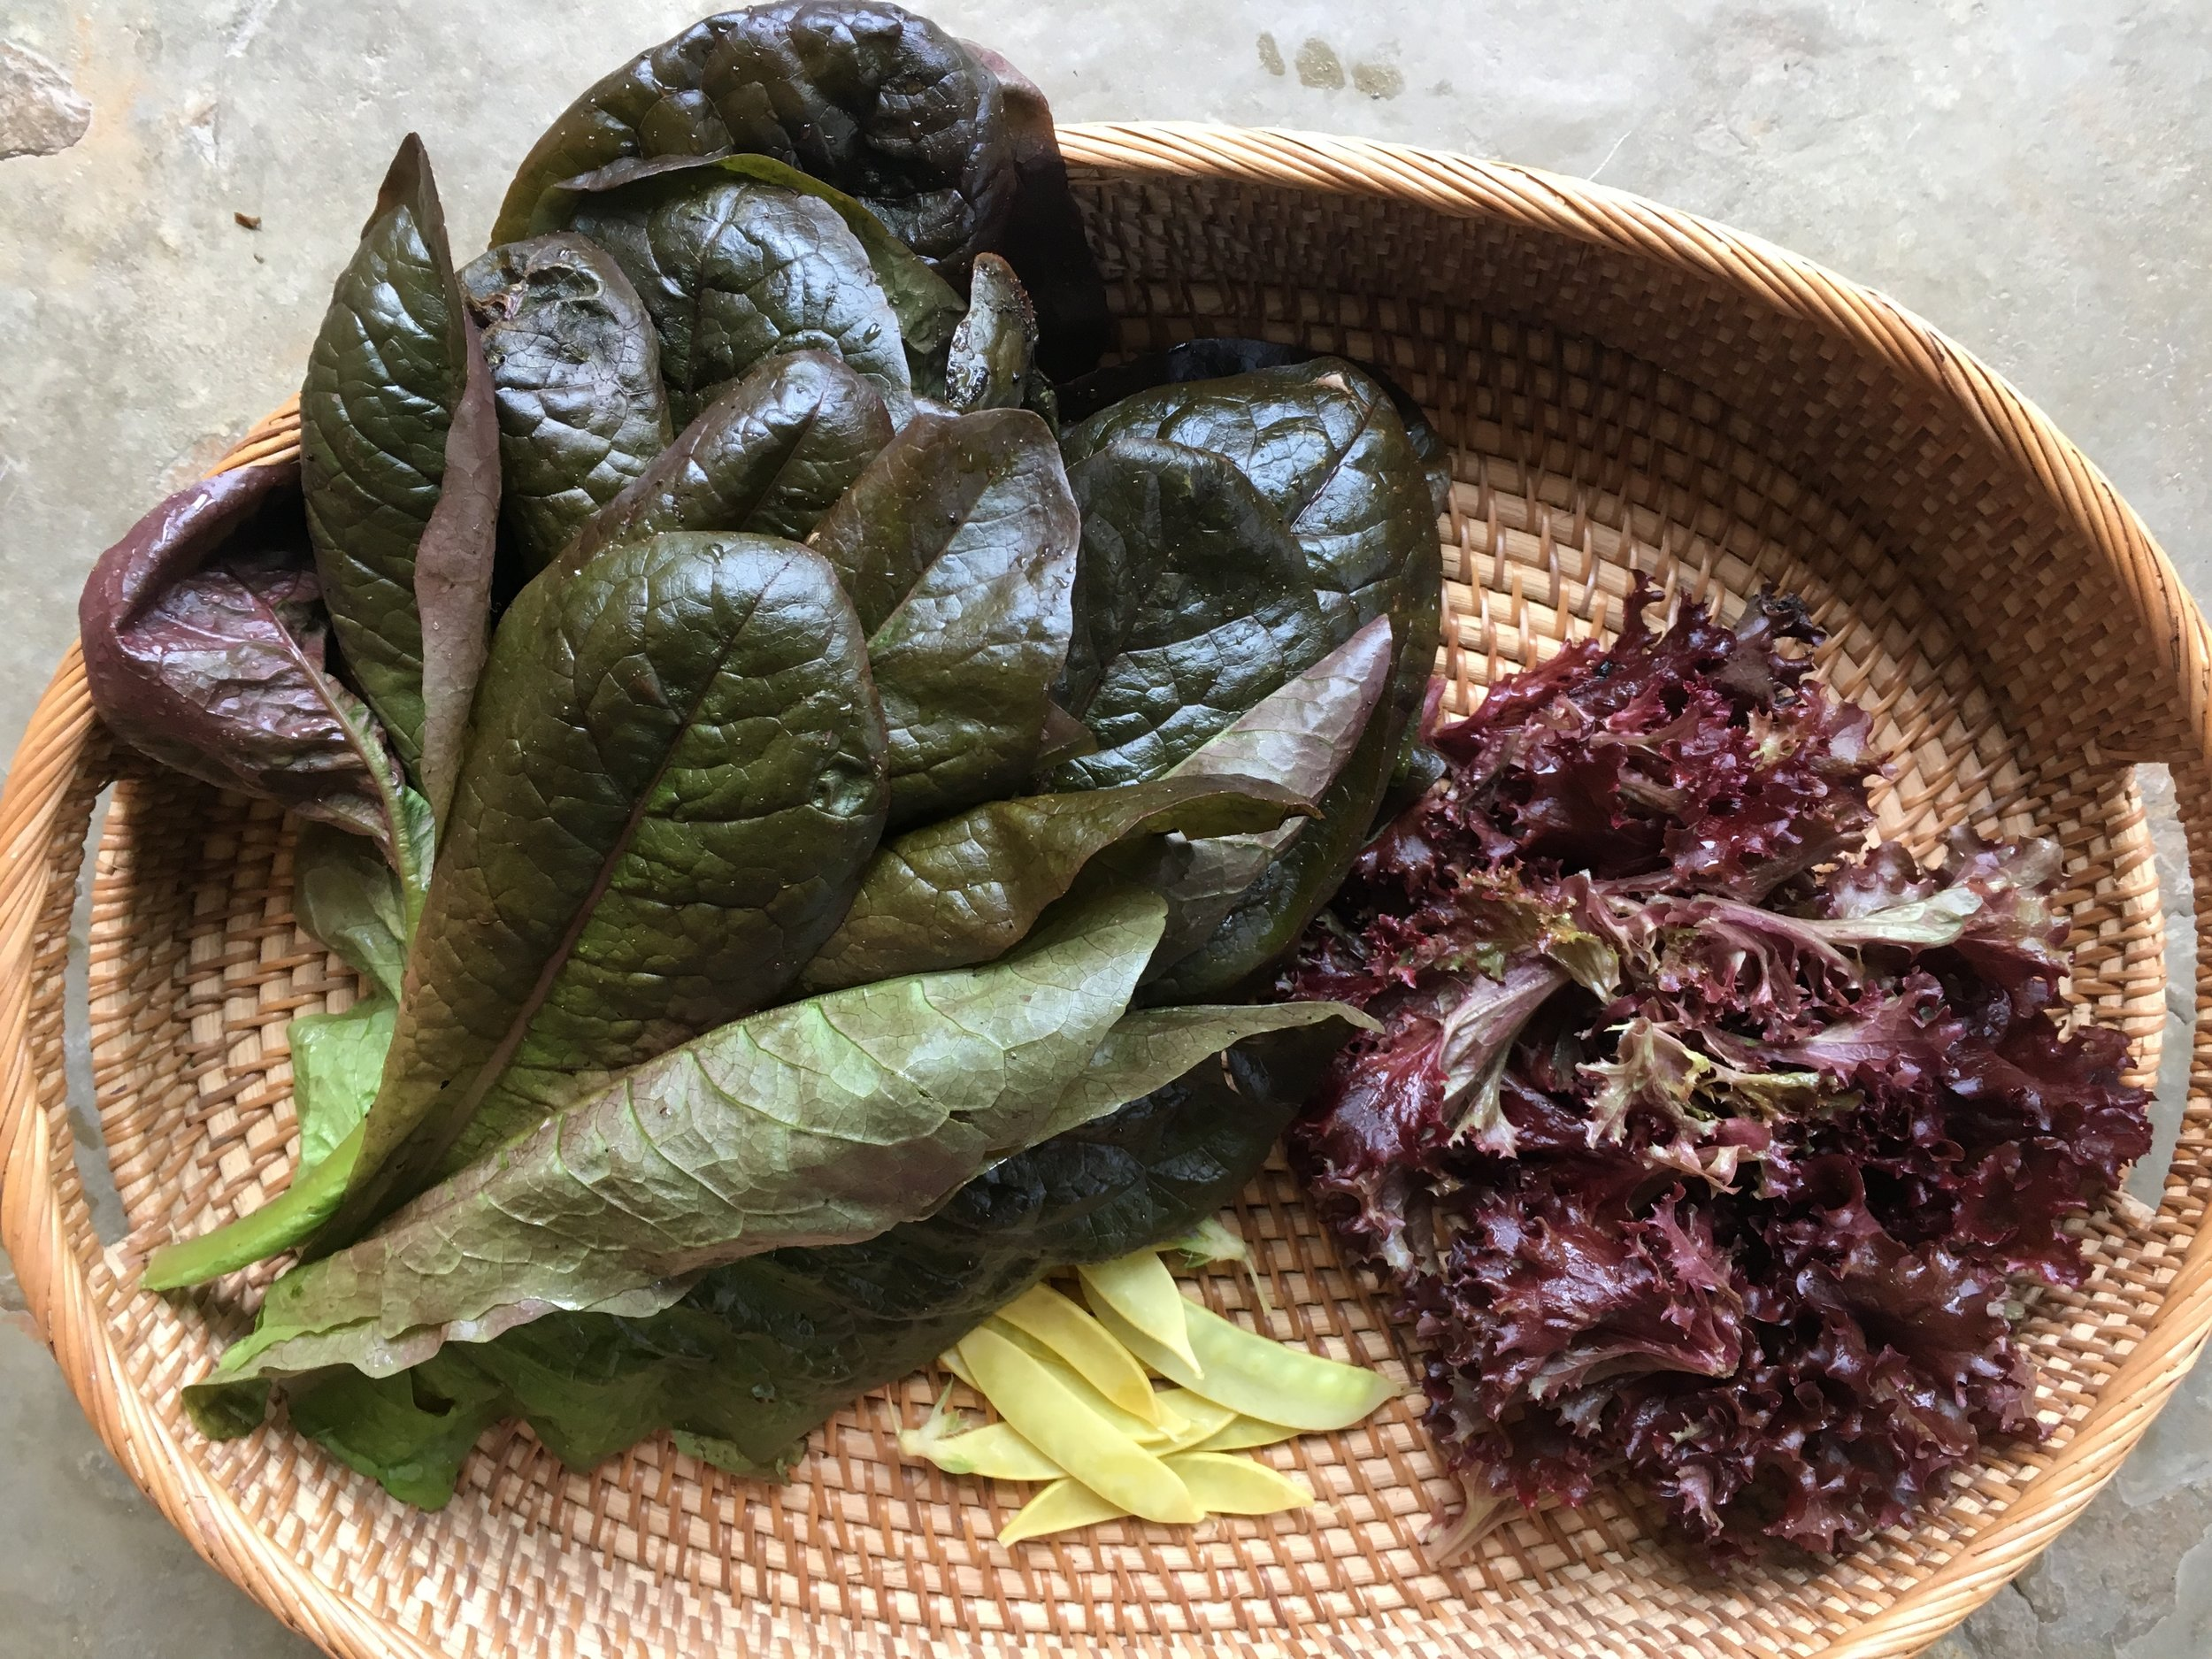 Red romaine and rosso losso lettuce—garden gifts for a friend.